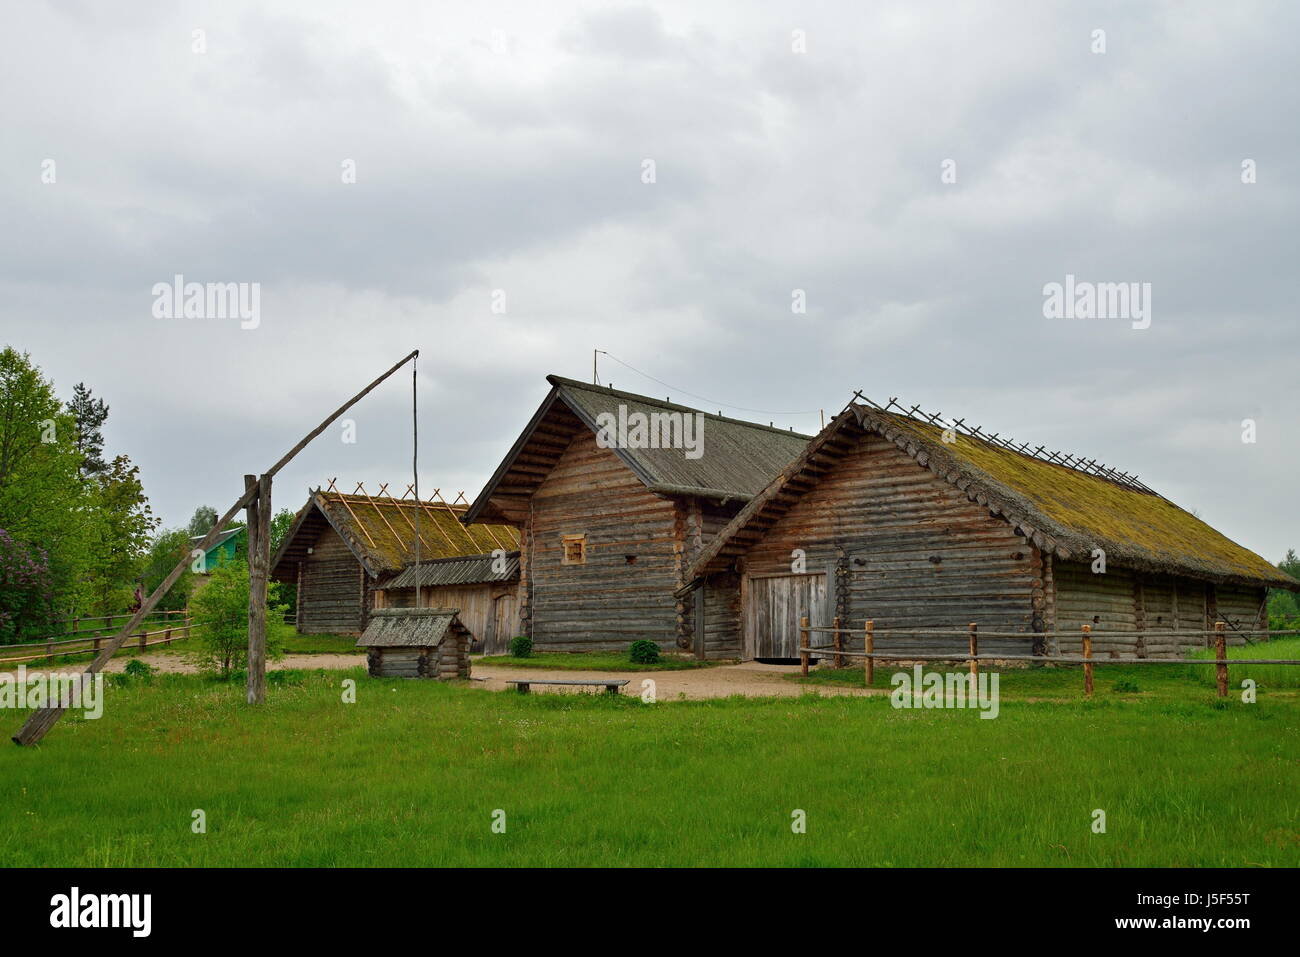 Old Russian log hut in Pushkin Mikhailovskoe summer cloudy day - Stock Image